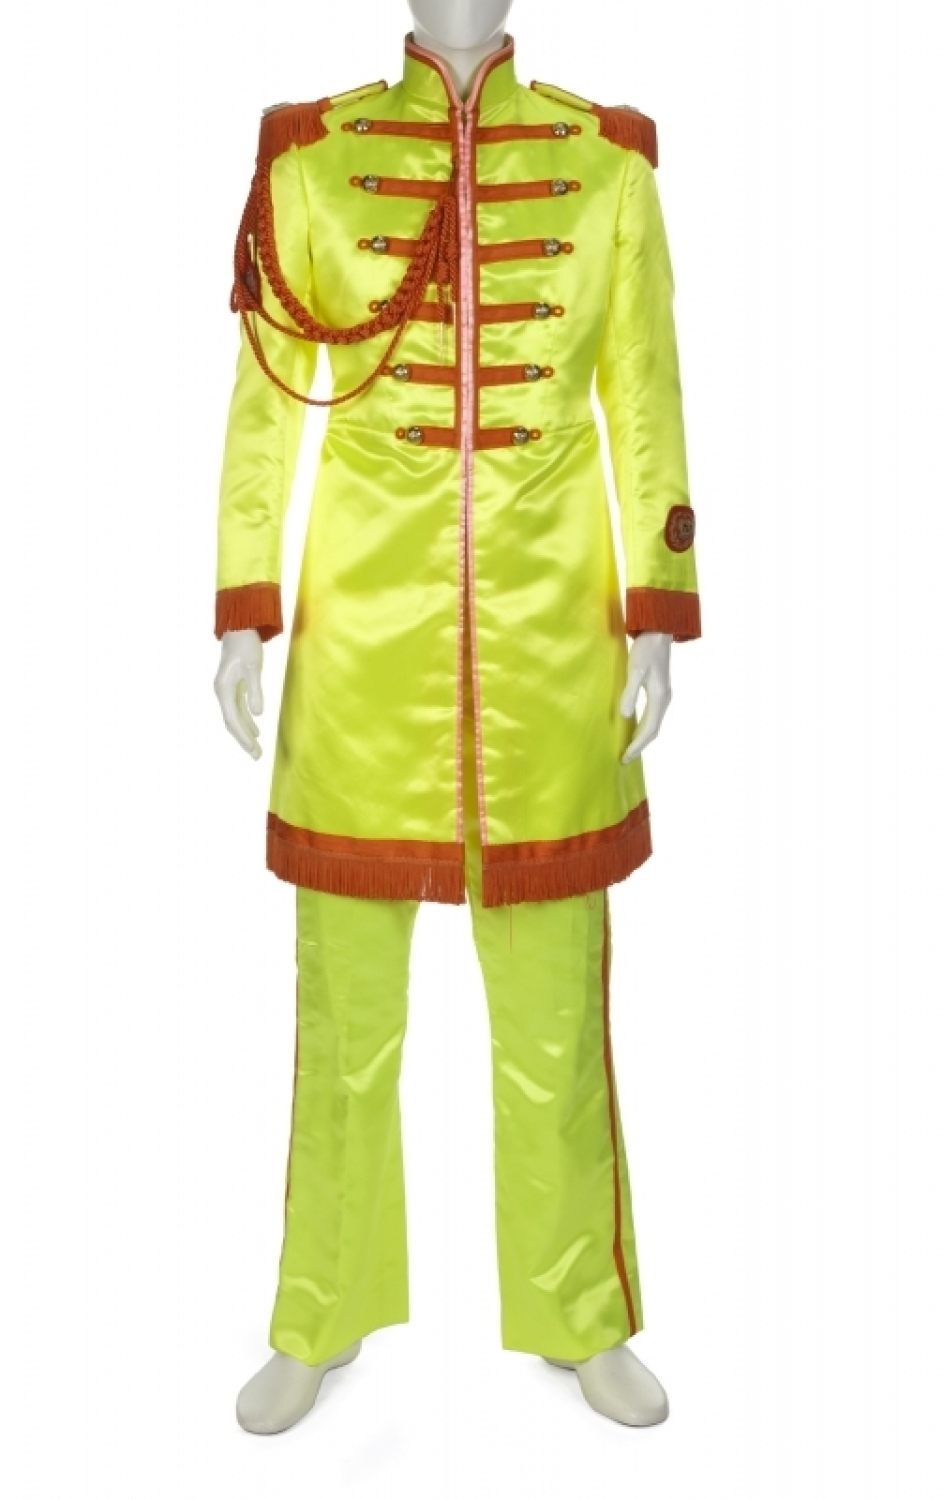 The Beatles Sgt Pepper S Lonely Hearts Club Band Set Of Suits By Noel Howard